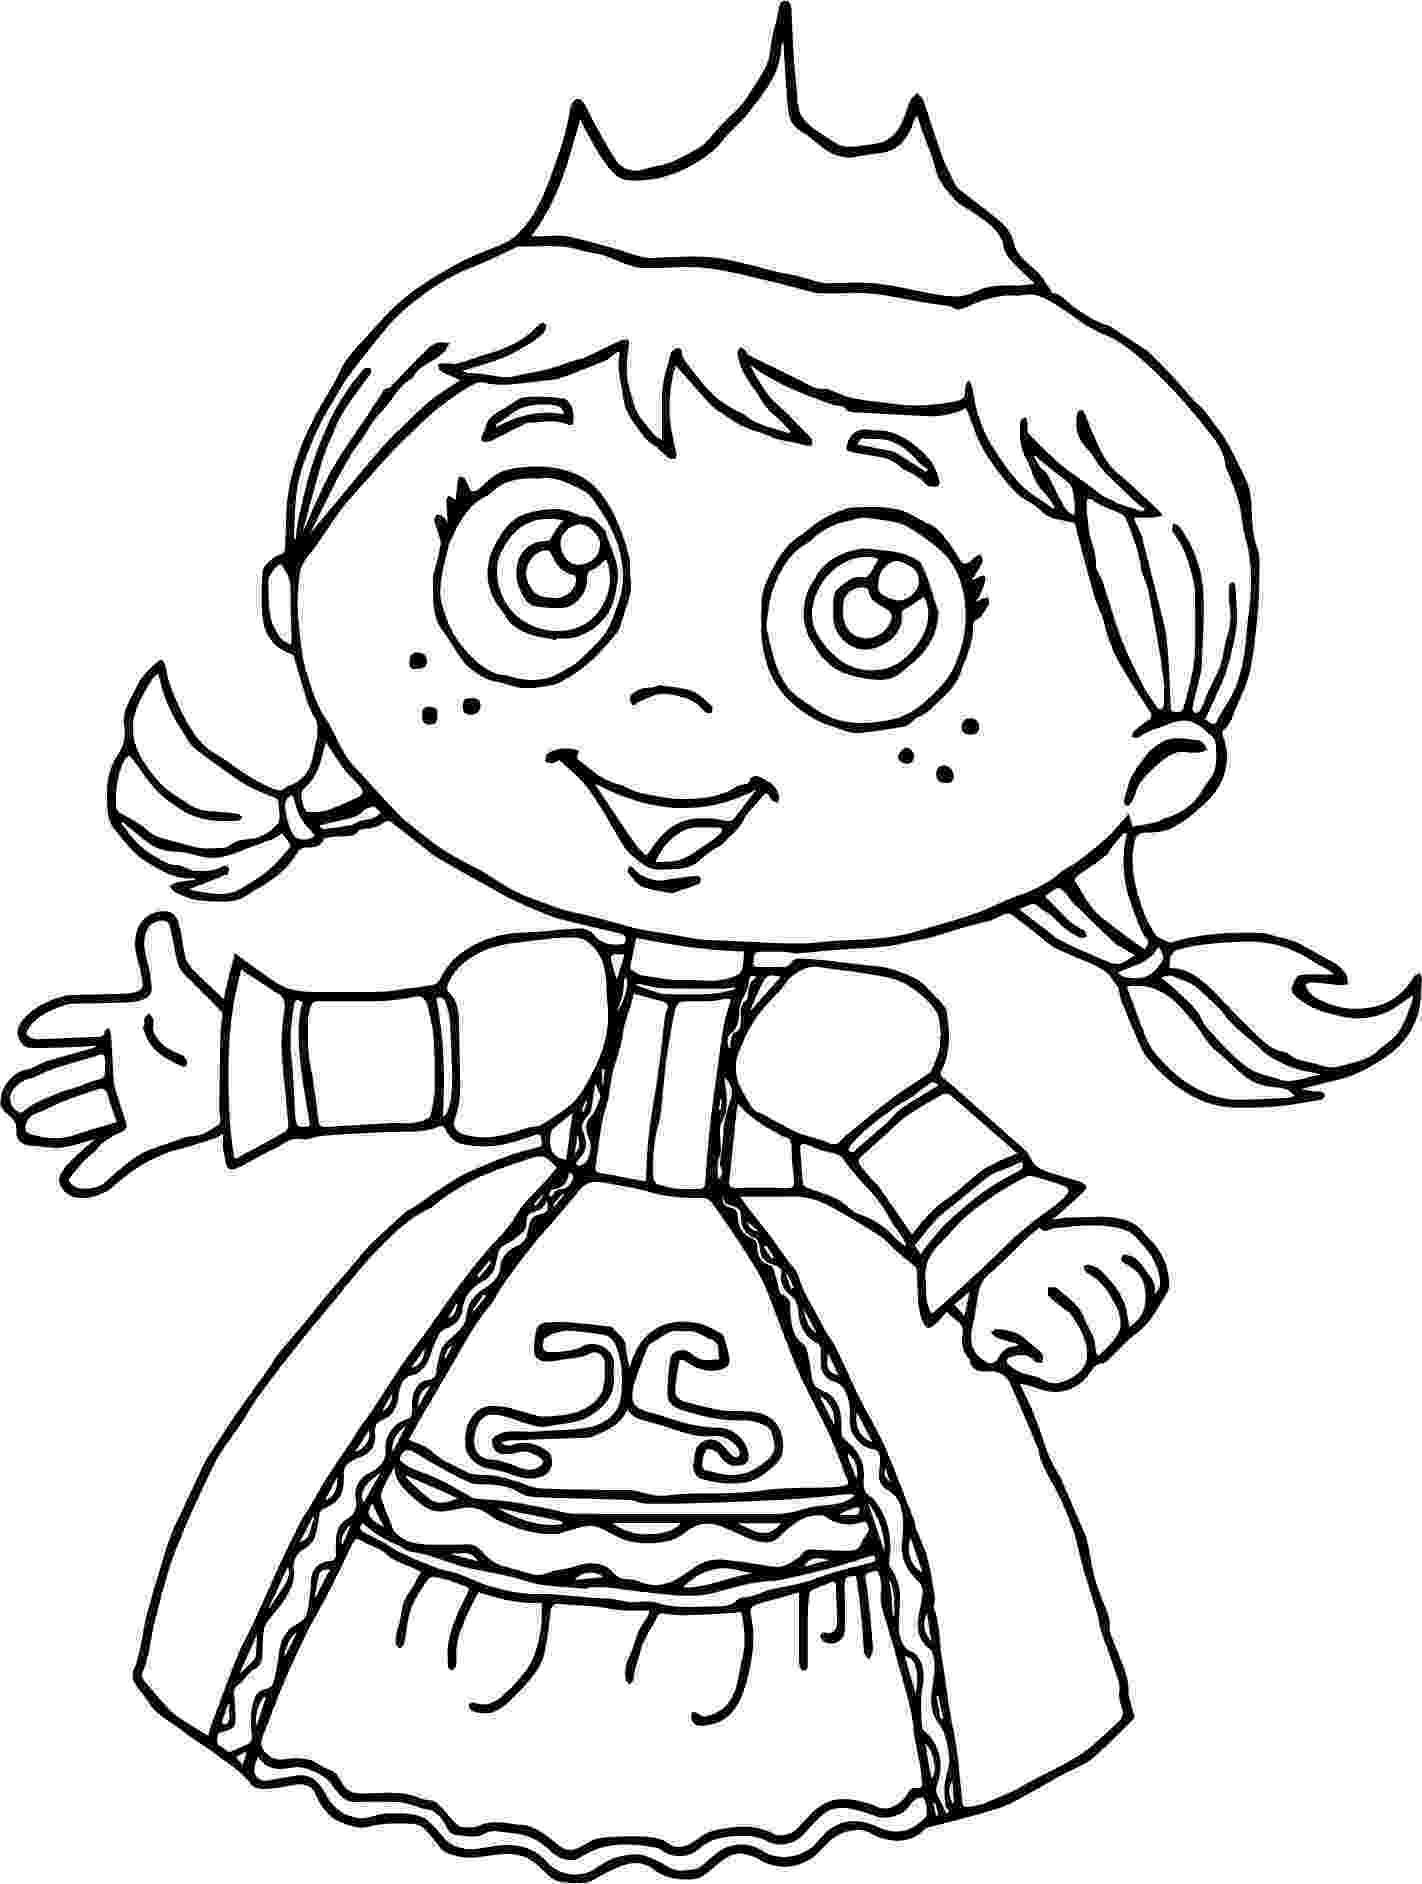 super colouring pages super why coloring pages best coloring pages for kids super colouring pages